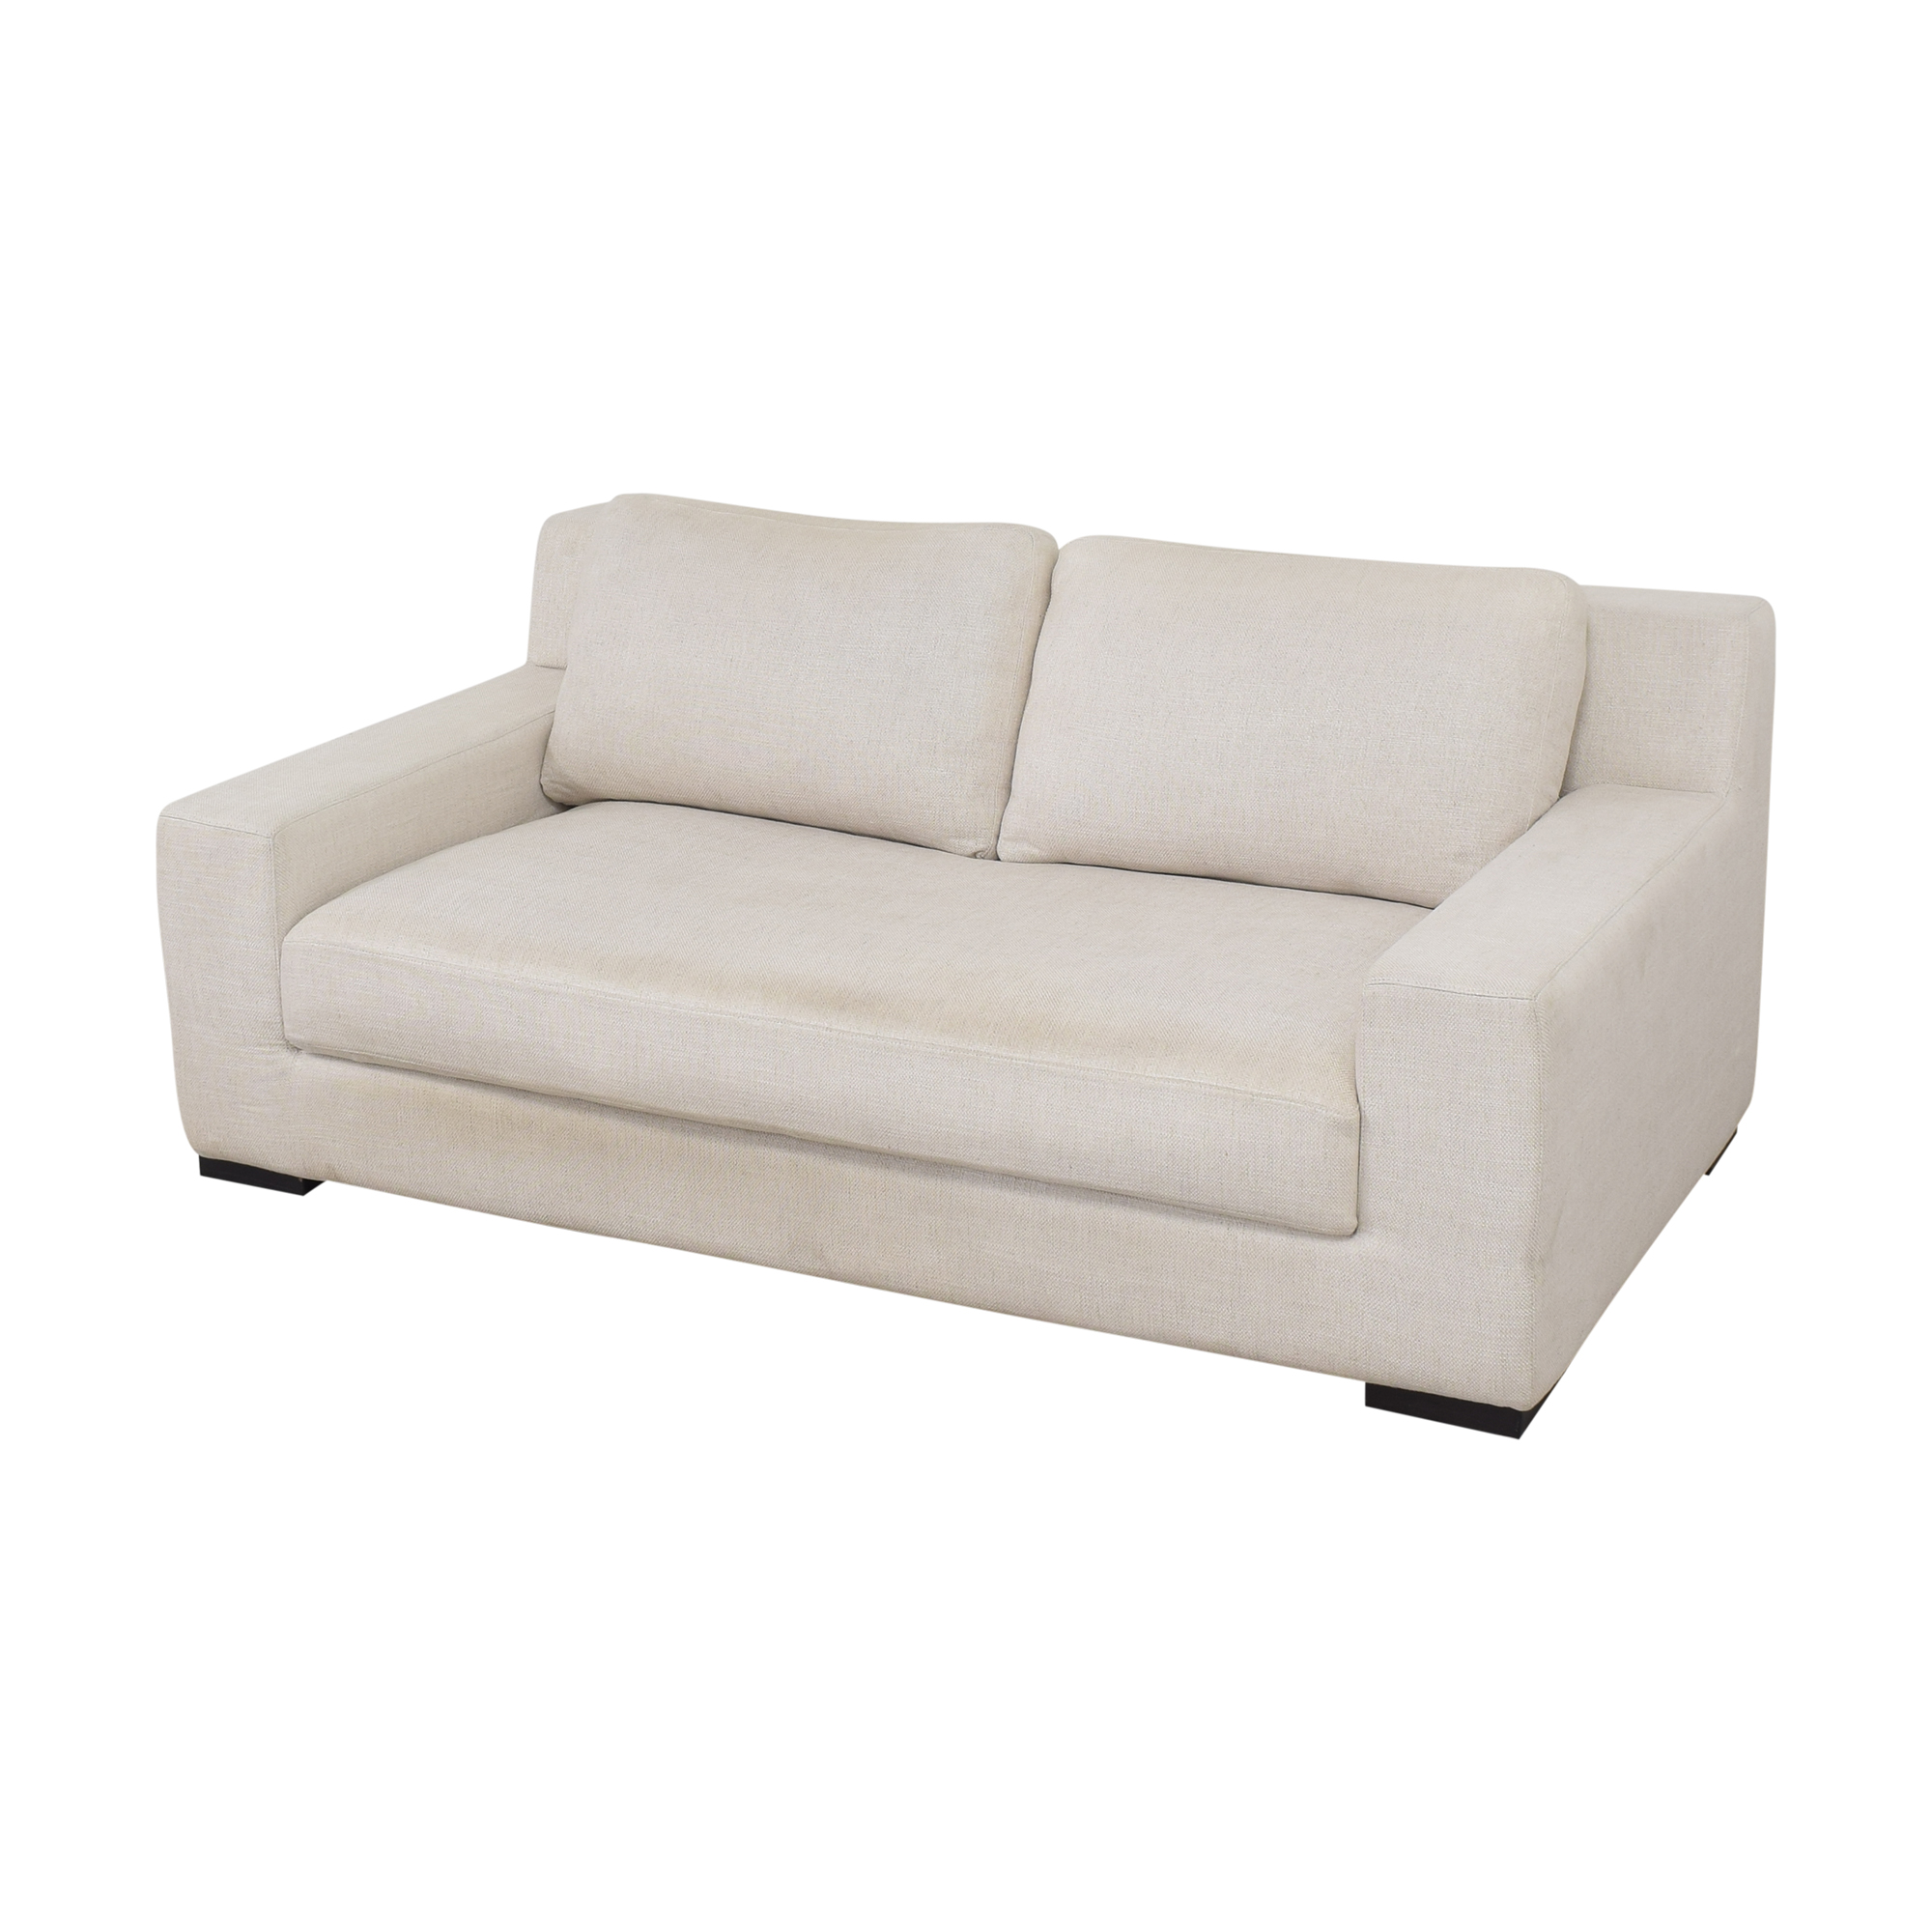 Restoration Hardware Restoration Hardware Modena Track Arm Bench-Seat Sofa for sale